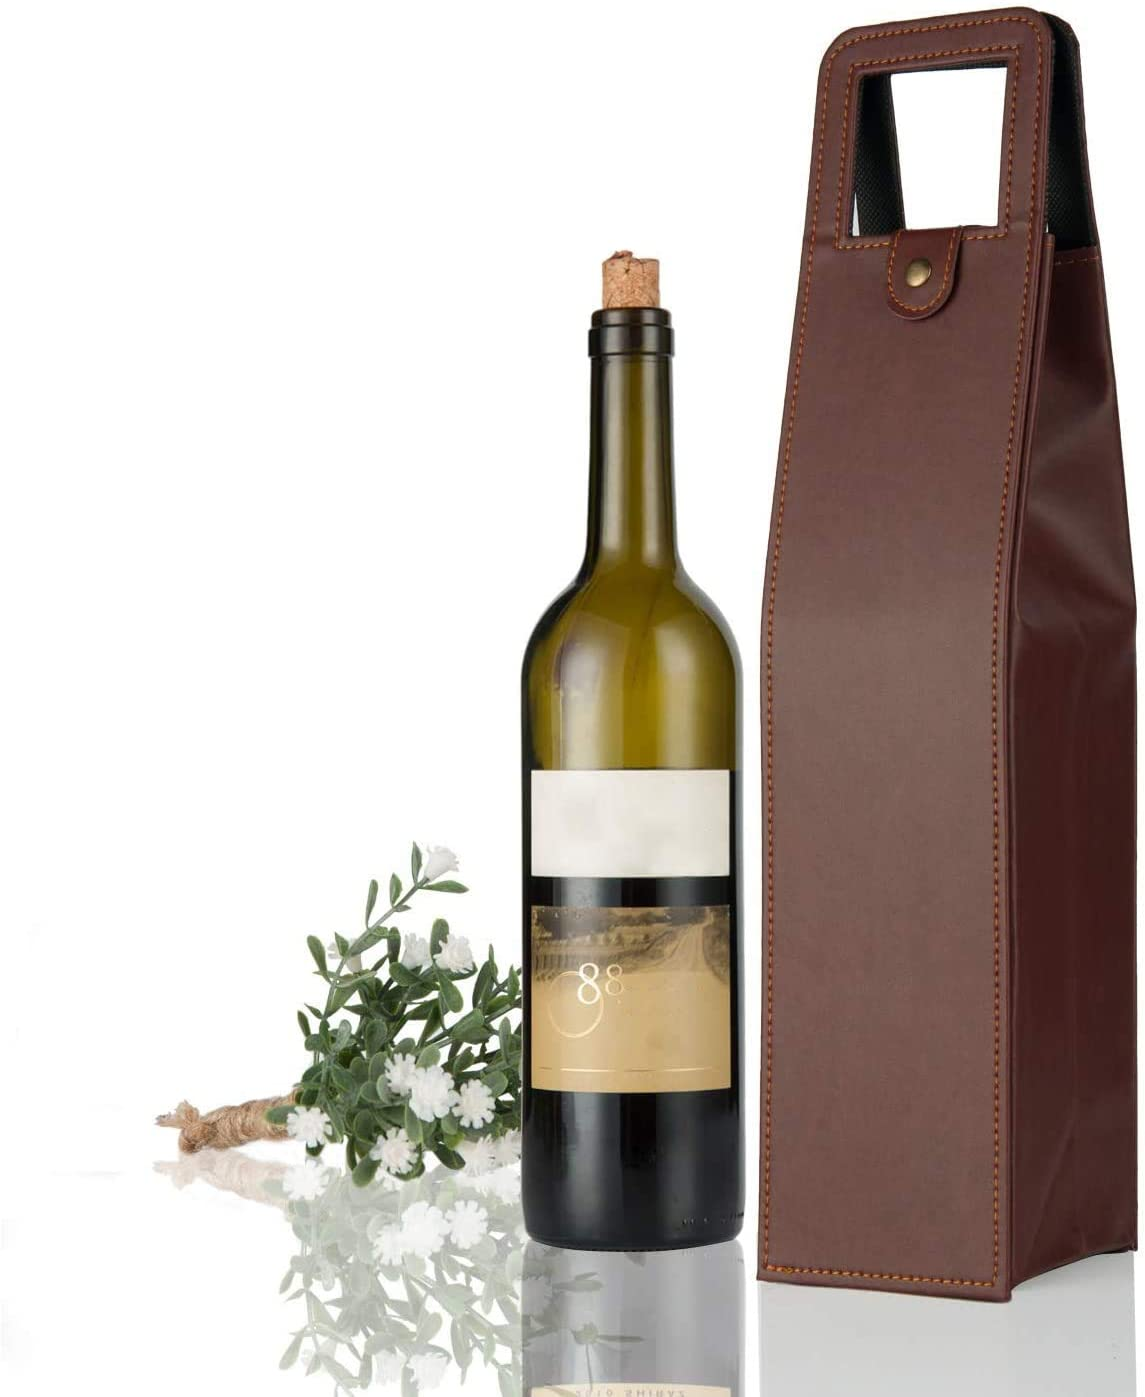 YunKo Leather Wine bag with Handles Reusable Wine Carriers Bag Single Bottle Wine Tote(Brown)